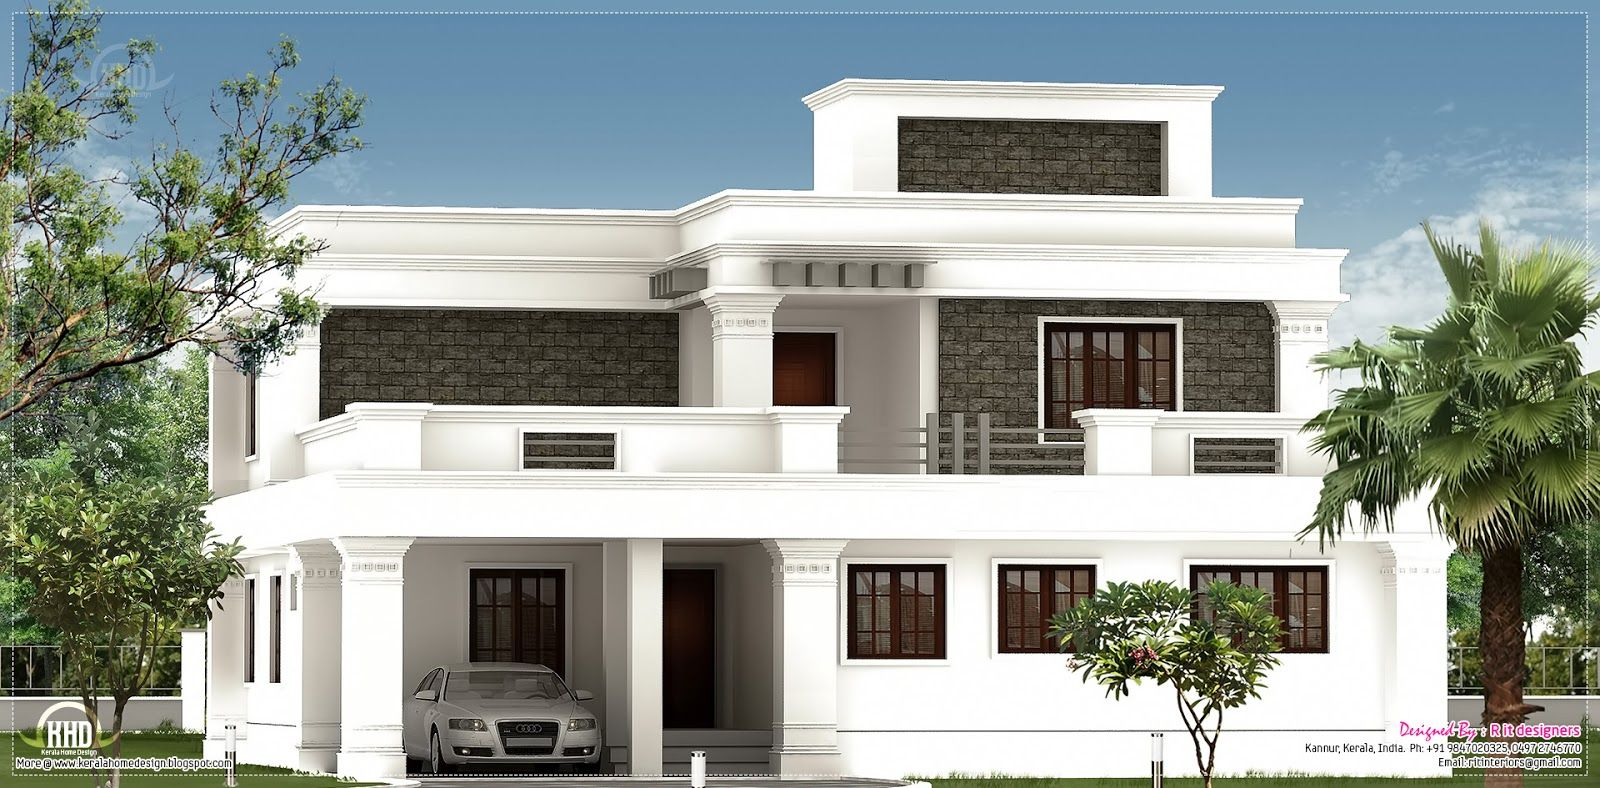 Peachy Flat Roof Homes Designs Flat Roof Villa Exterior In 2400 Sq Feet Largest Home Design Picture Inspirations Pitcheantrous